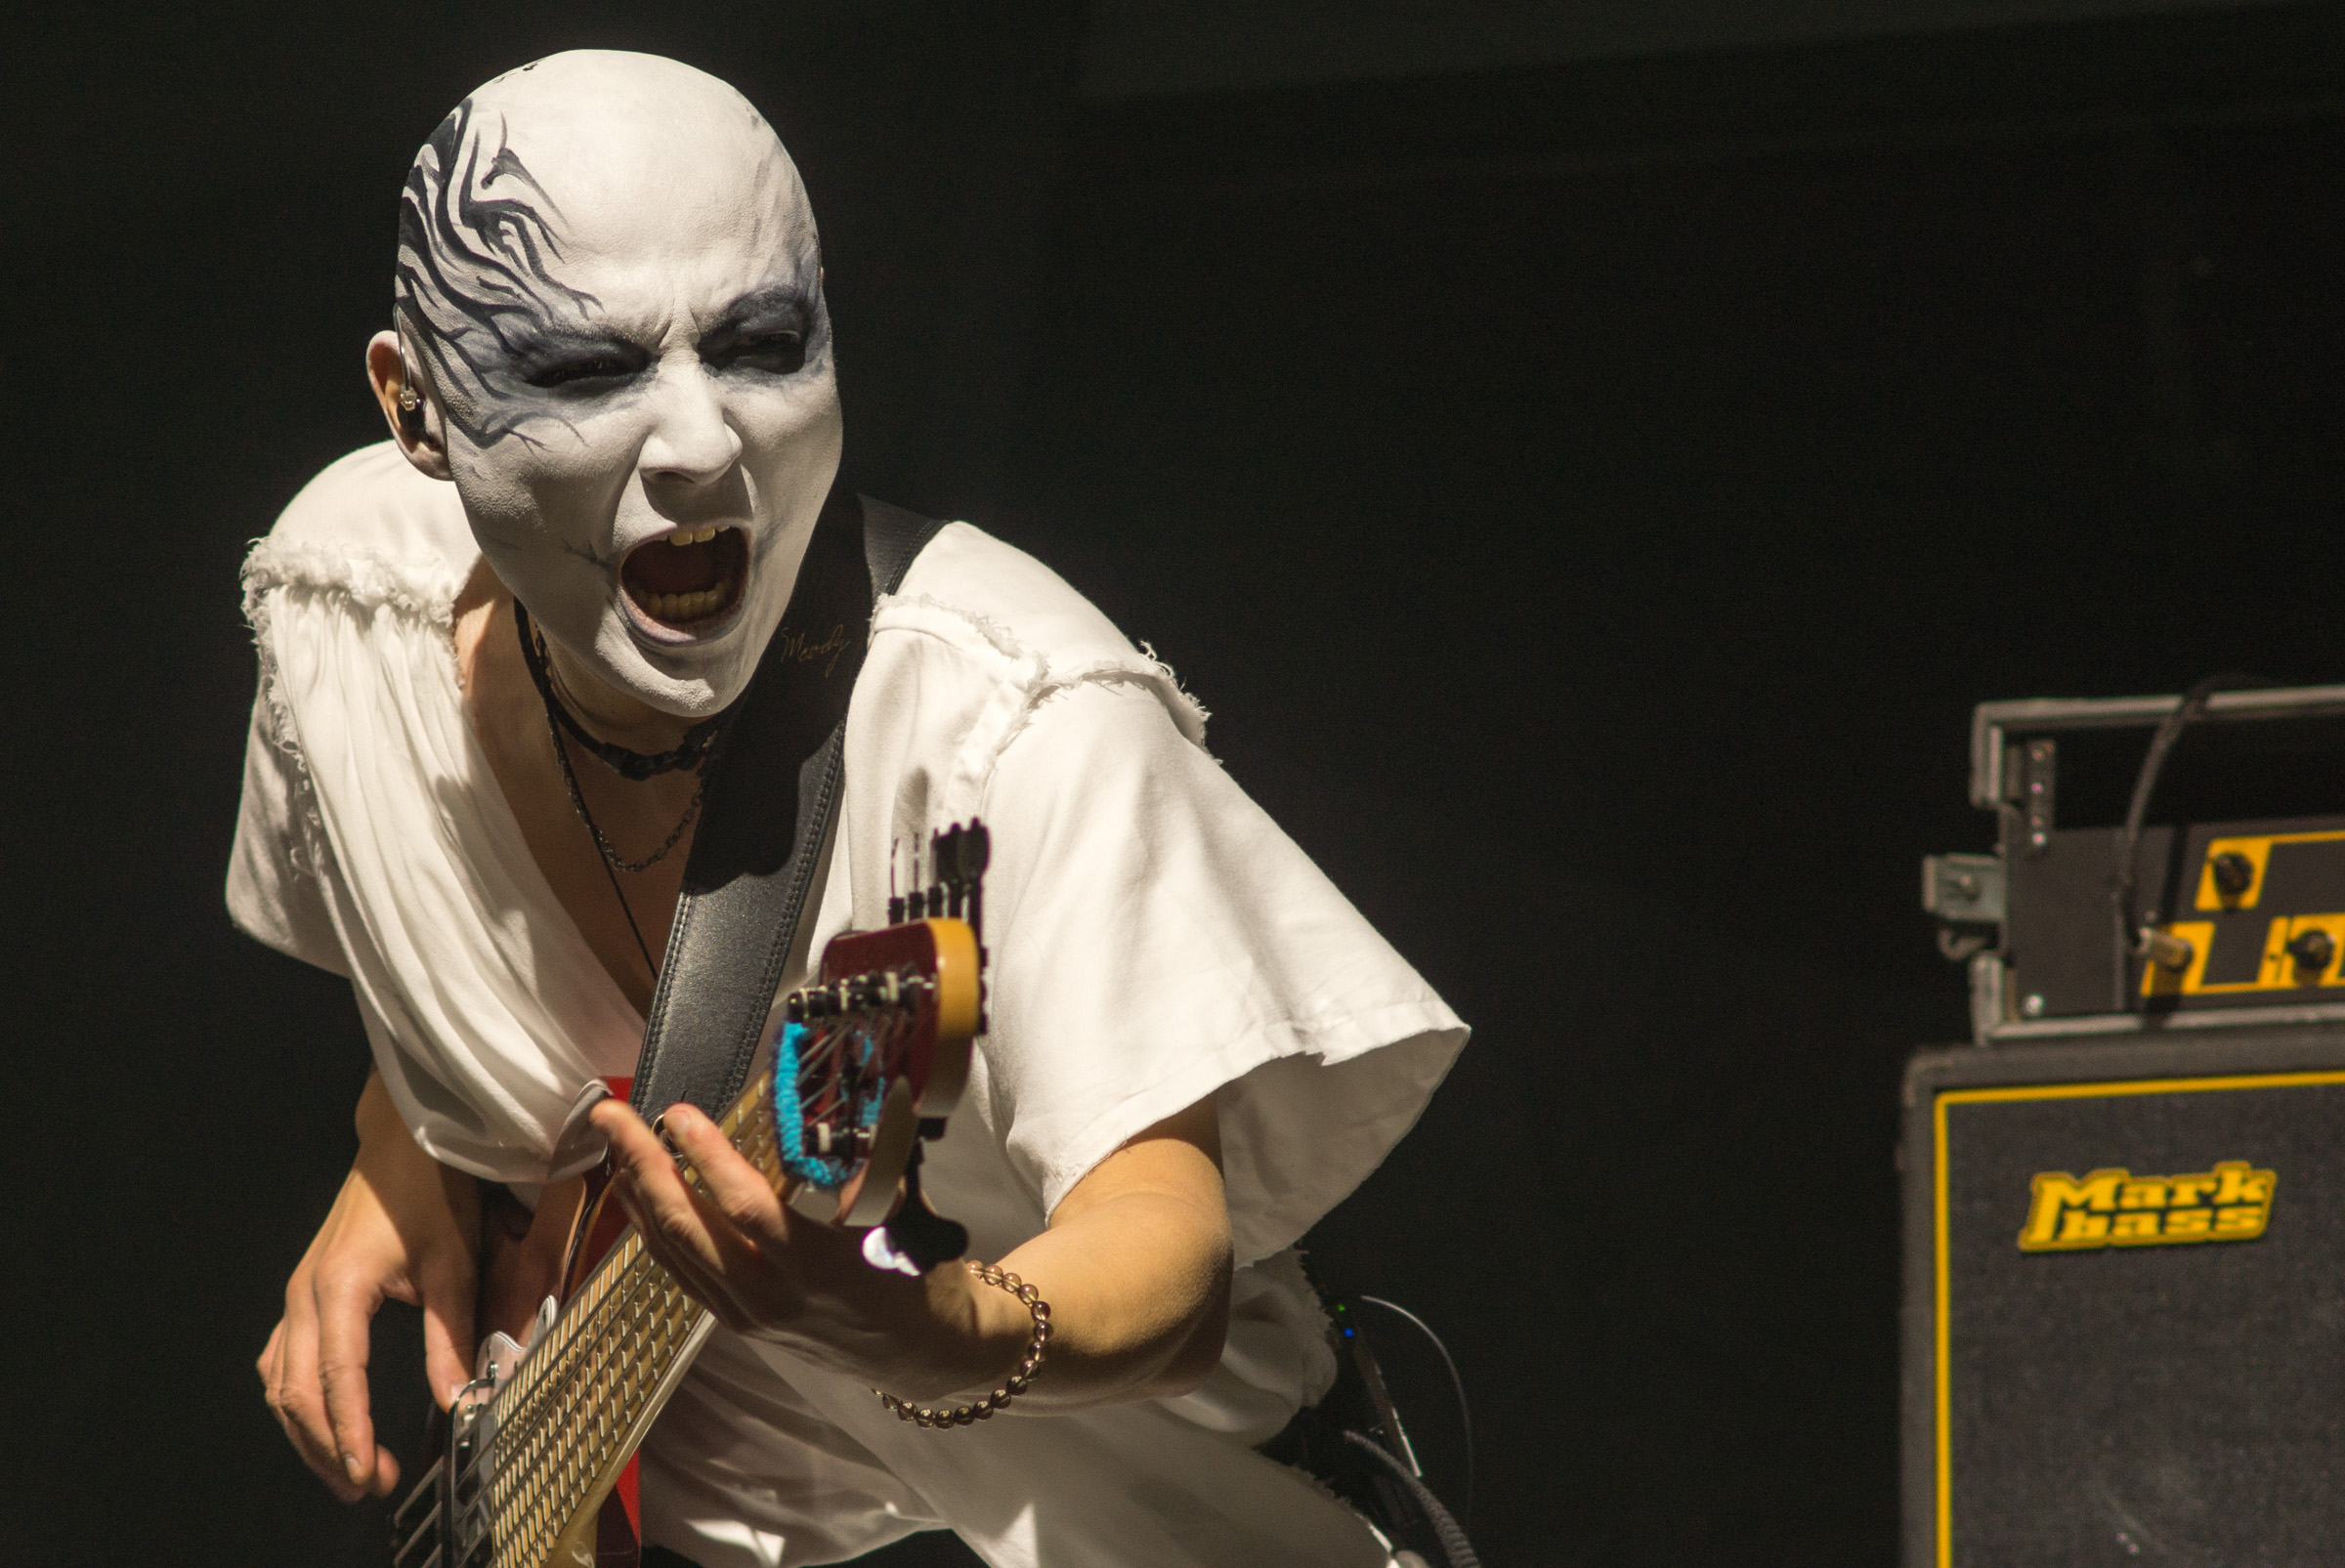 Boh of Kami Band (Babymetal)